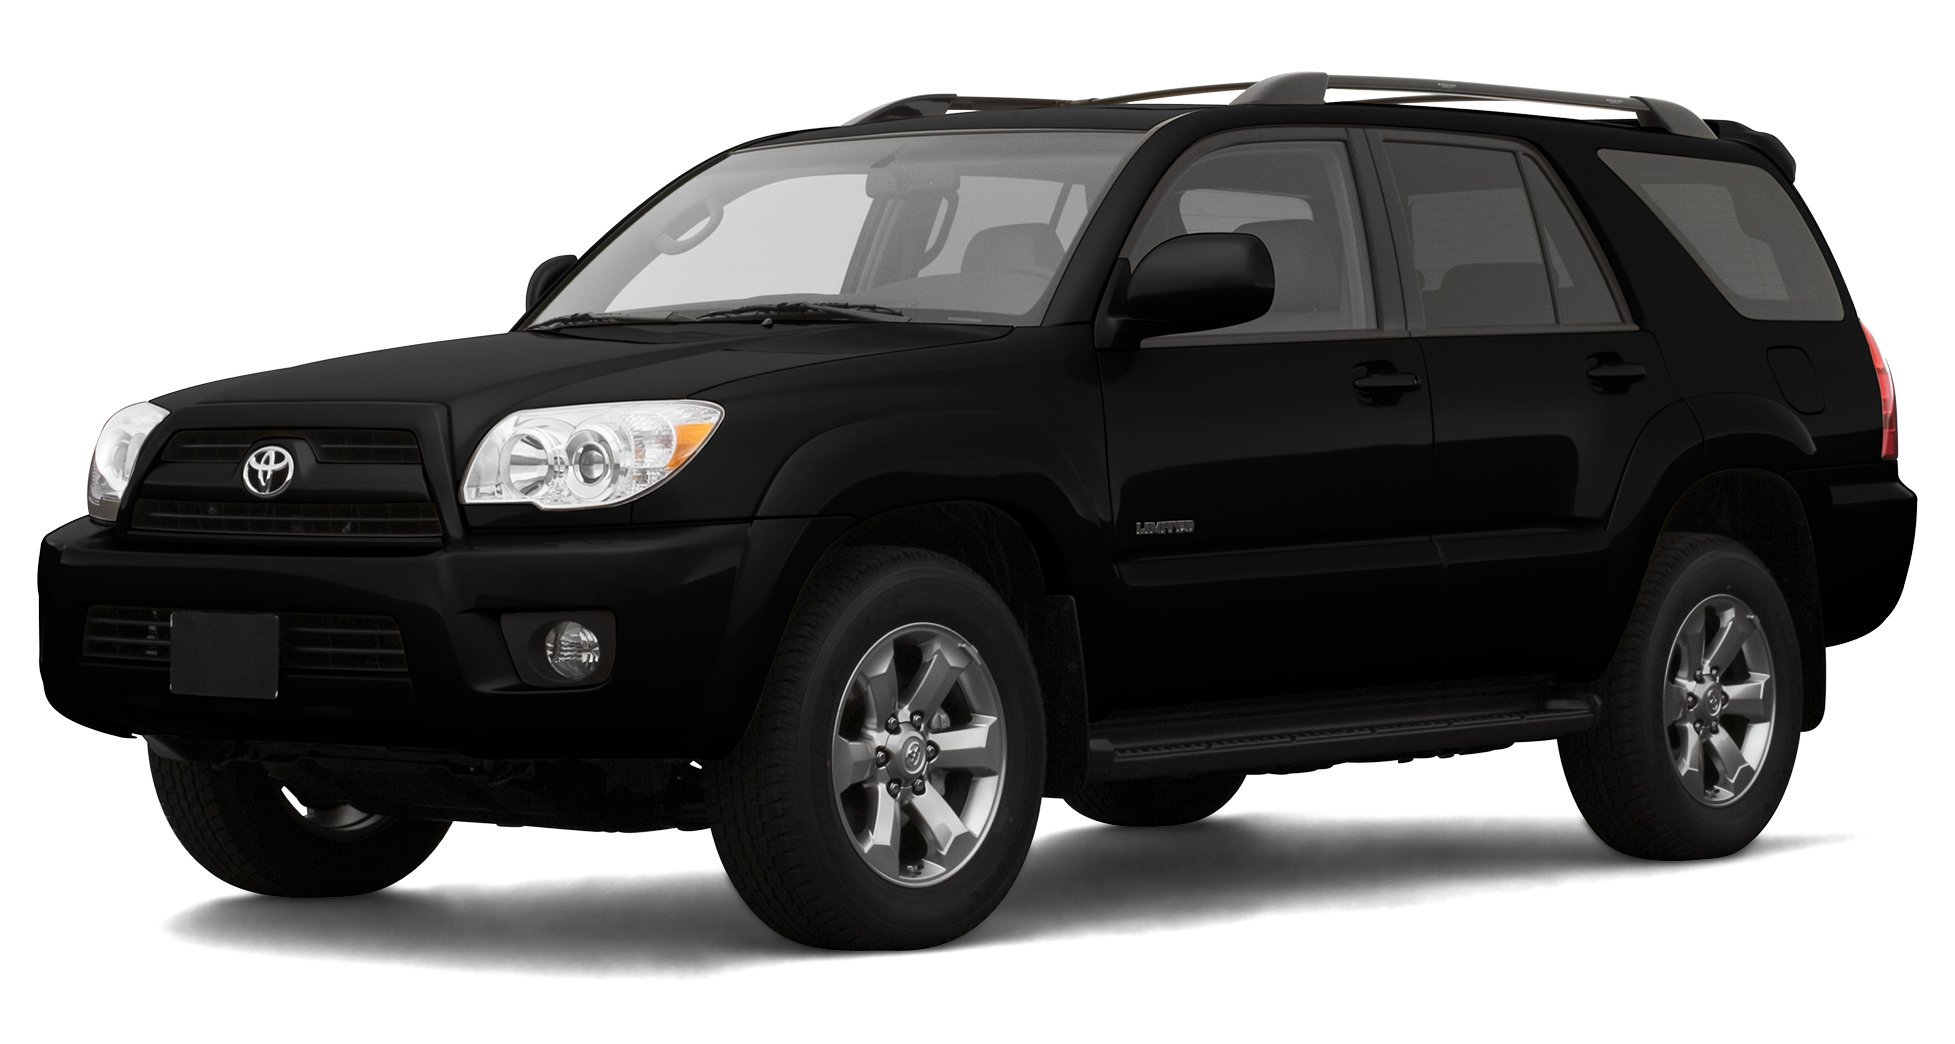 2007 Toyota 4runner Reviews Images And Specs Vehicles 1992 Starter Limited 2 Wheel Drive 4 Door V6 Gs